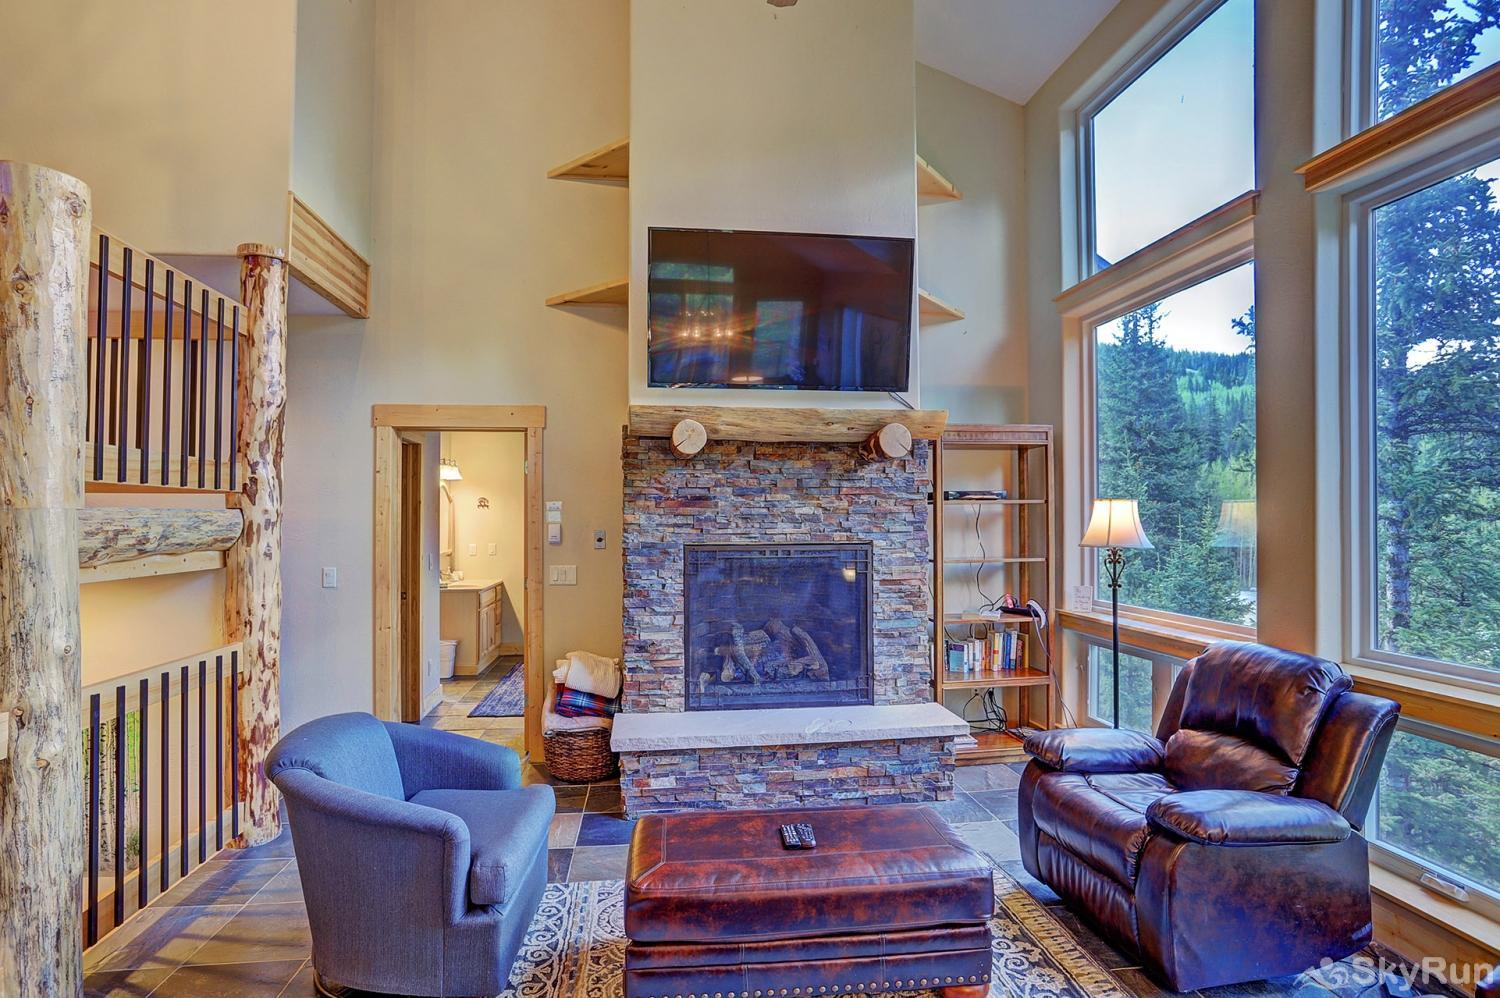 Twin Creek Lodge Stay cozy warm by your gas fireplace and flat screen TV